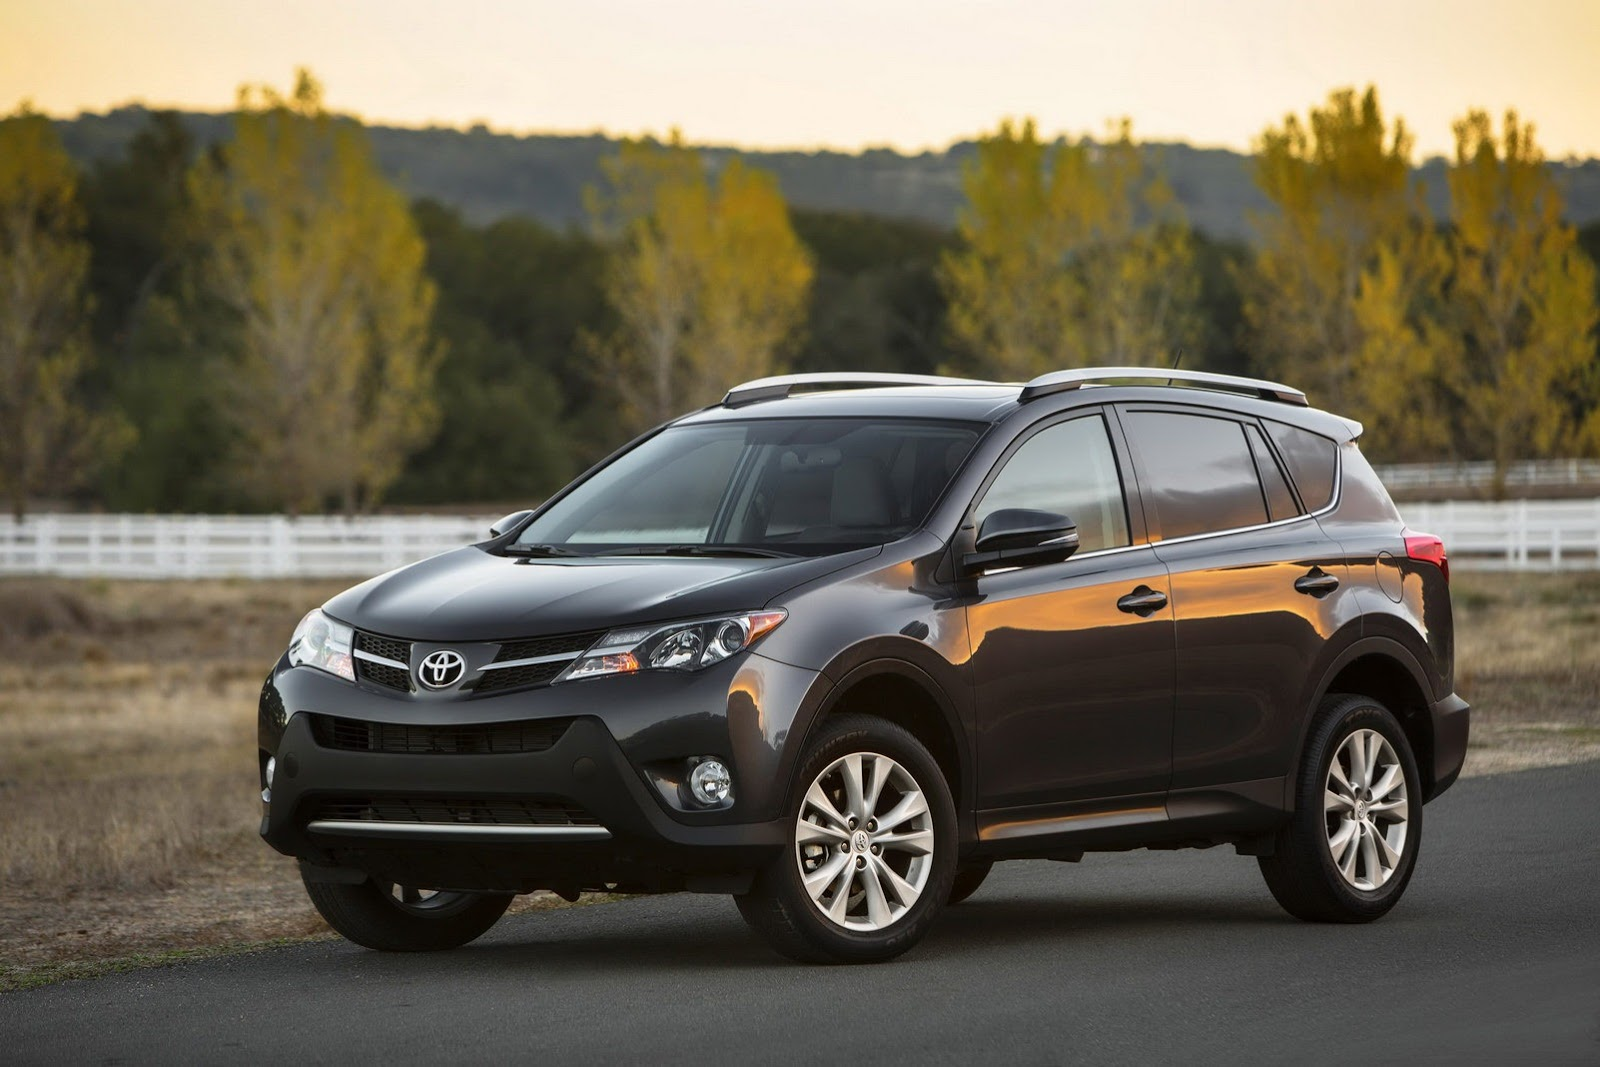 2013 toyota rav4 on sale date and pricing announced autoevolution. Black Bedroom Furniture Sets. Home Design Ideas